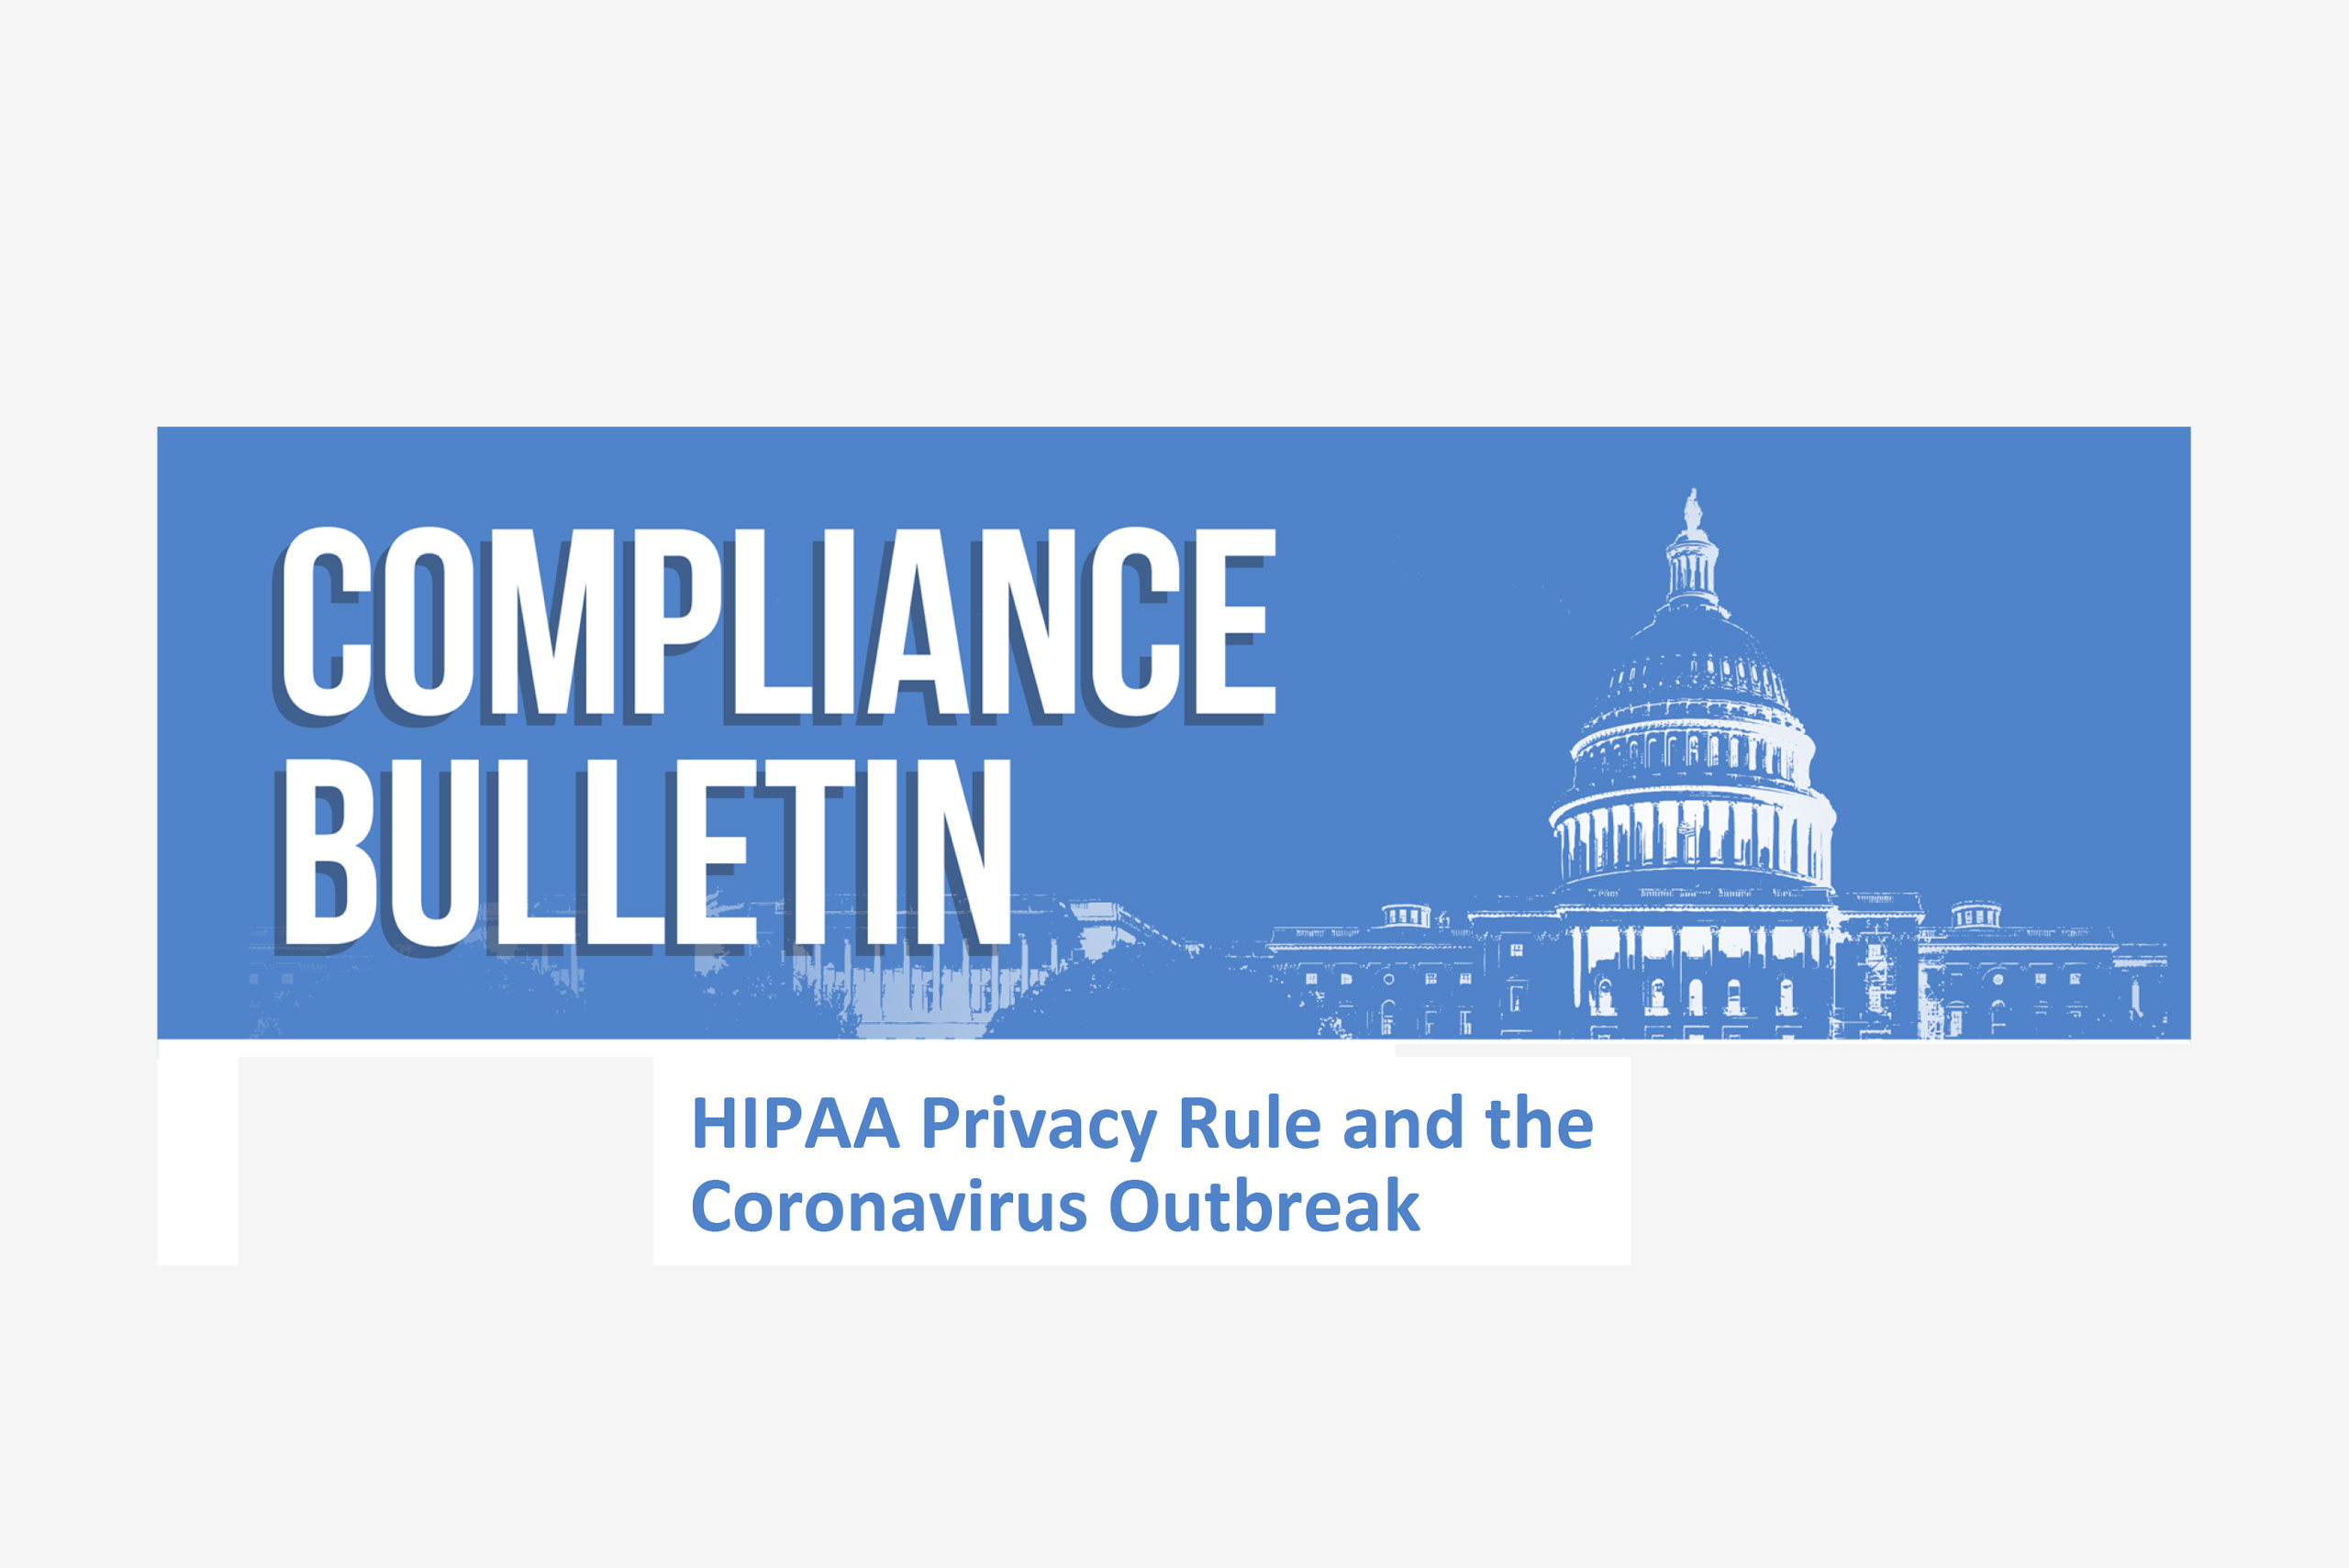 HIPAA Privacy Rule and the Coronavirus Outbreak